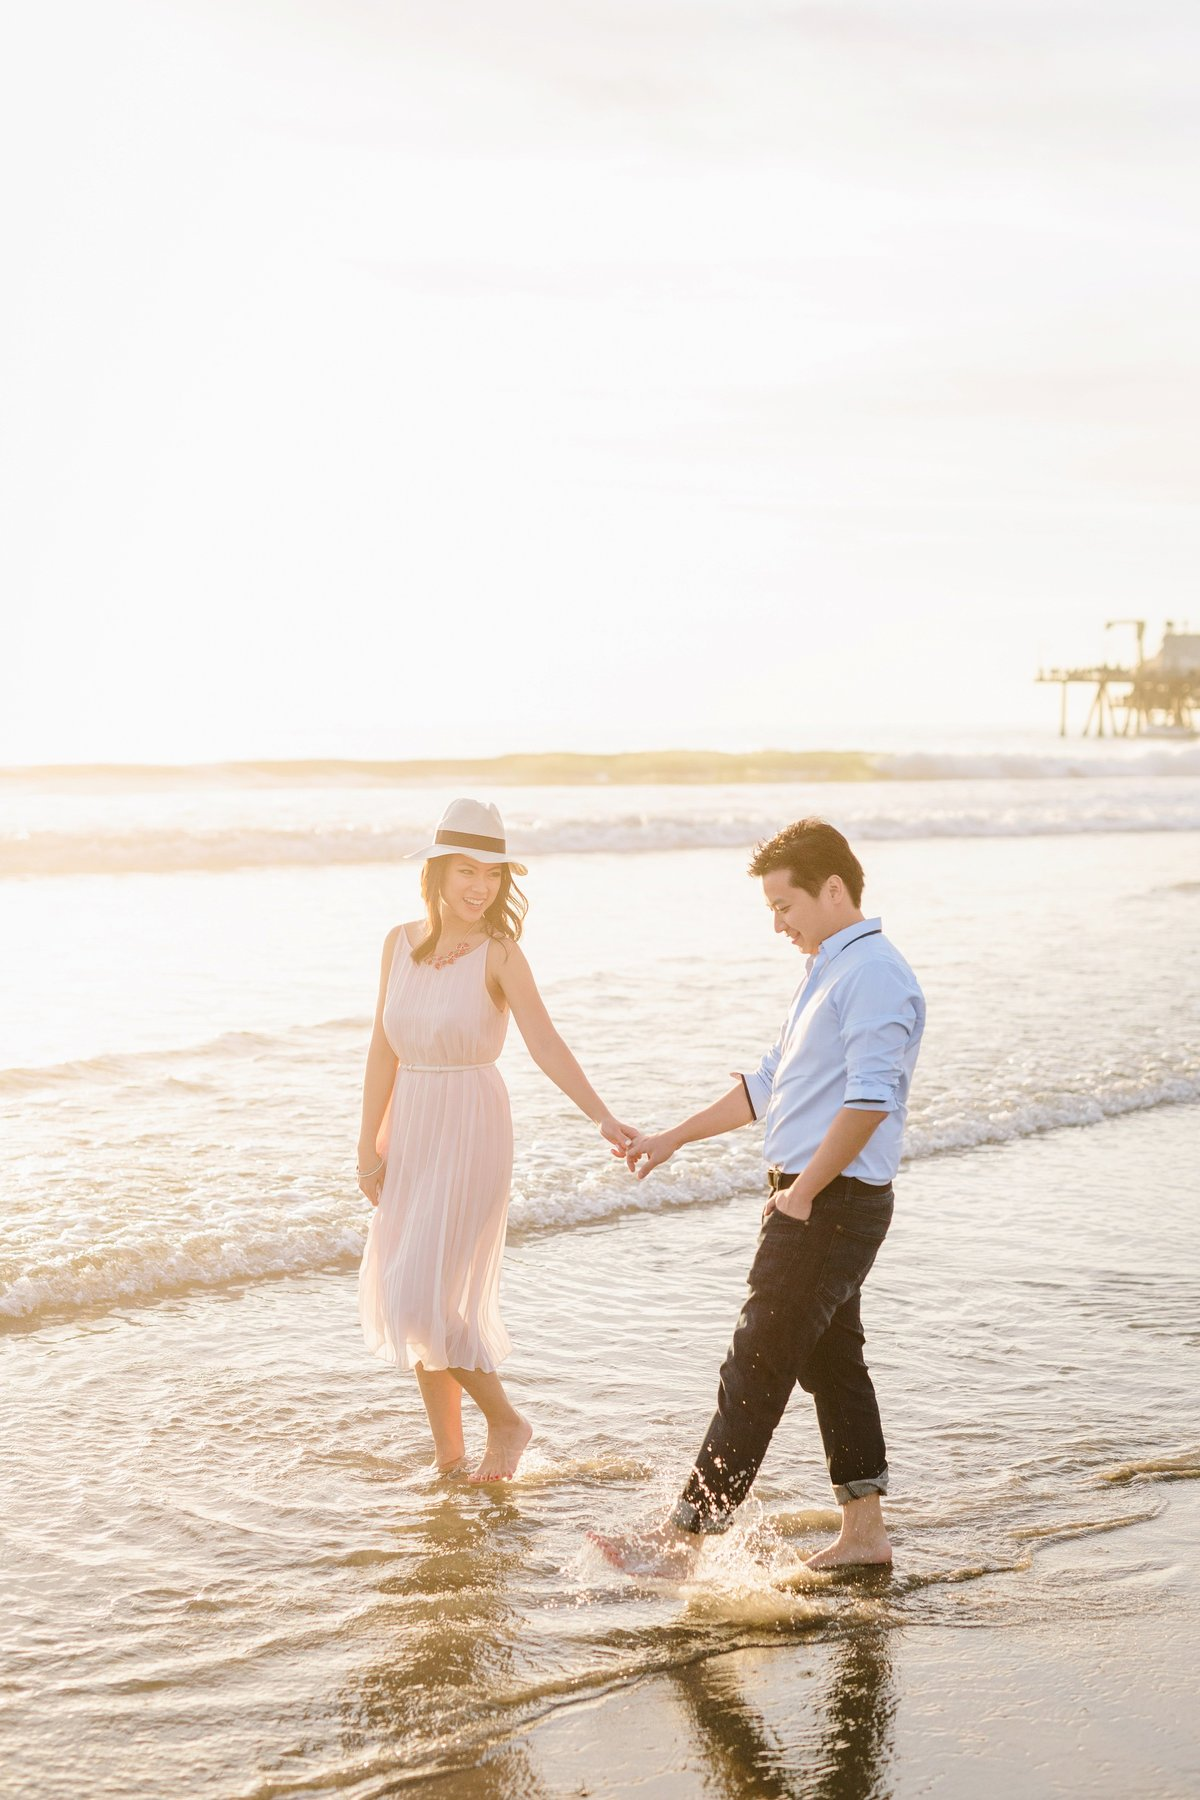 Best California Engagement Photographer_Jodee Debes Photography_047